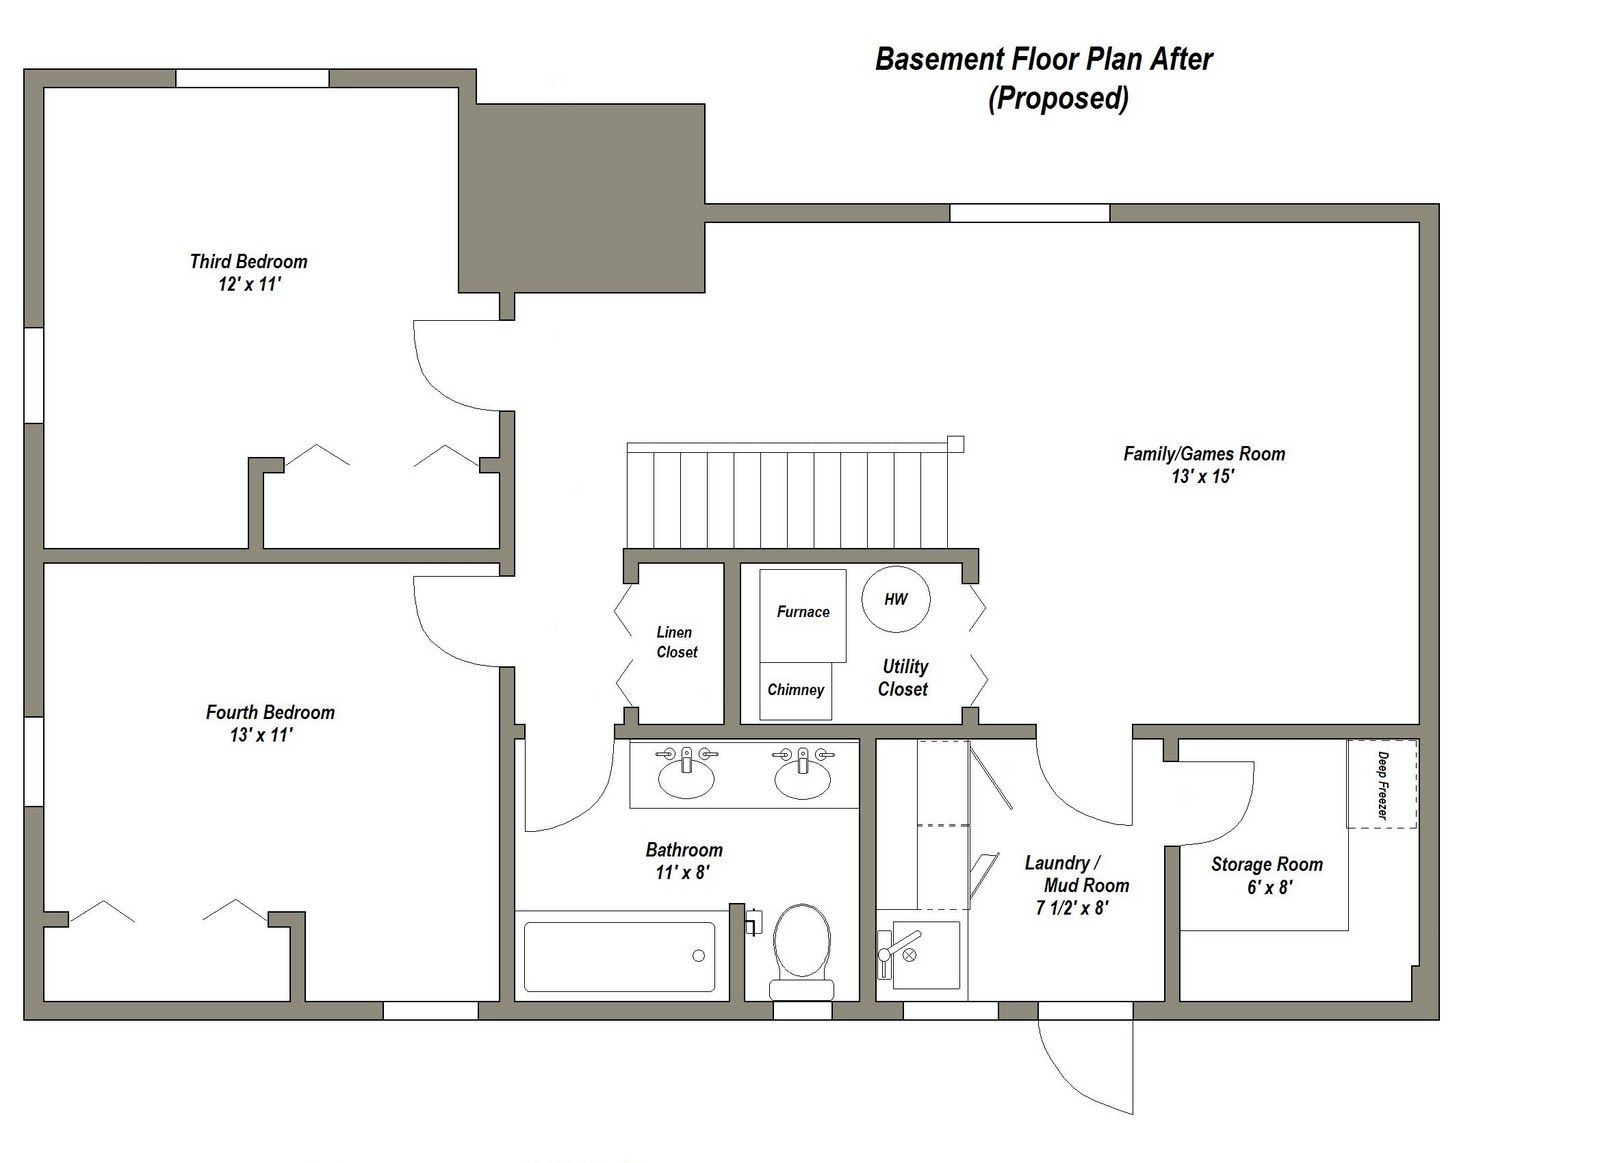 Finished Basement Floor Plans  finished basement floor plans younger unger Best 25 ideas on Pinterest office